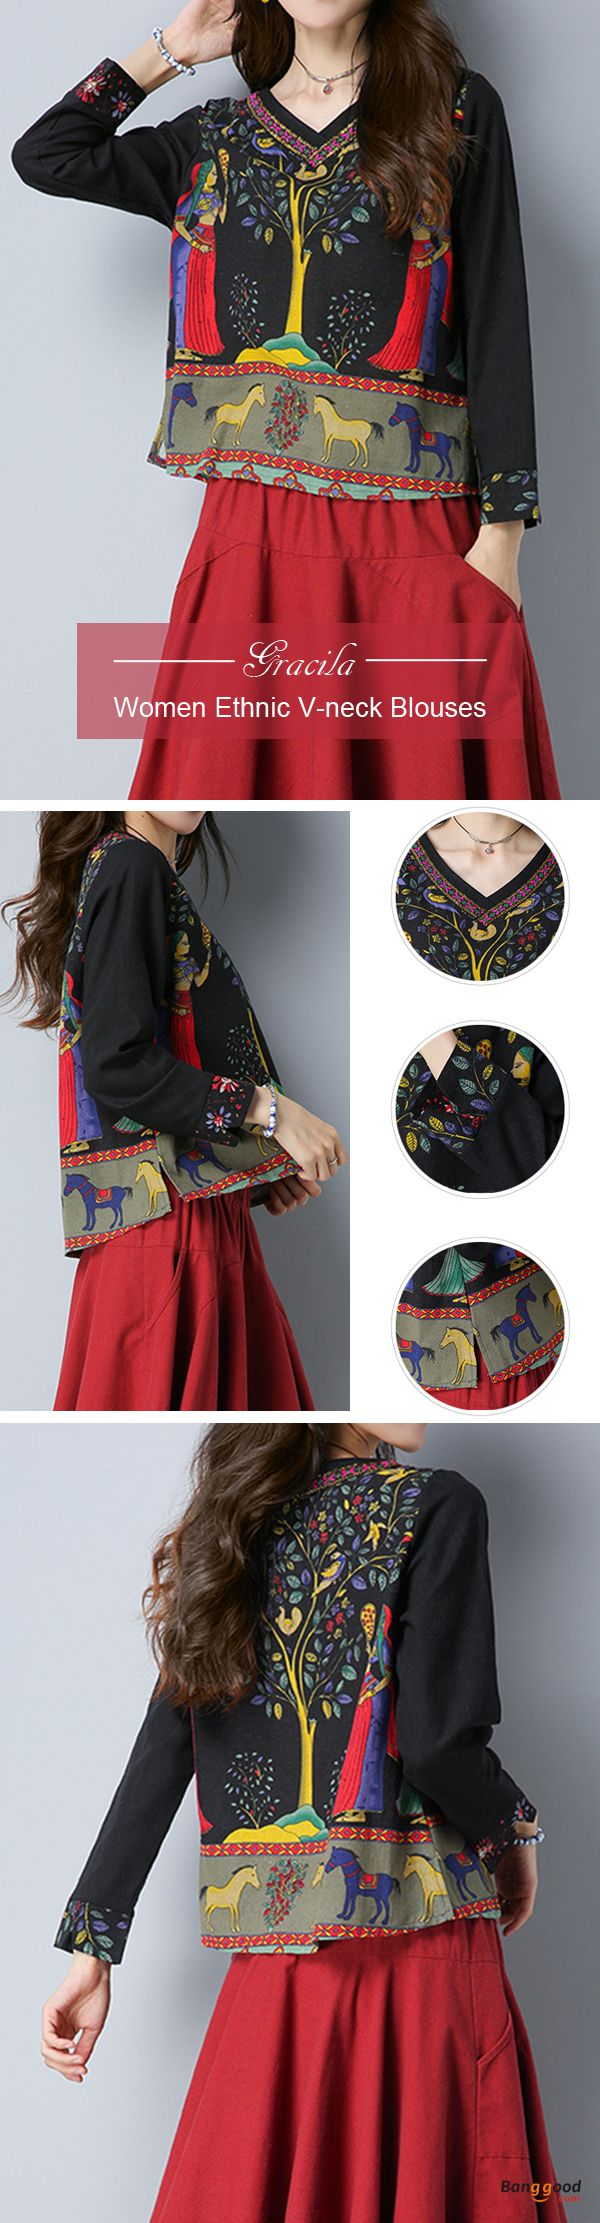 US$24.99 + Free shipping. Size: M~5XL. Fall in love with casual and vintage style! Gracila Women Ethnic Print V-neck Long Sleeve Blouses. #blouses #tops #women #wedding